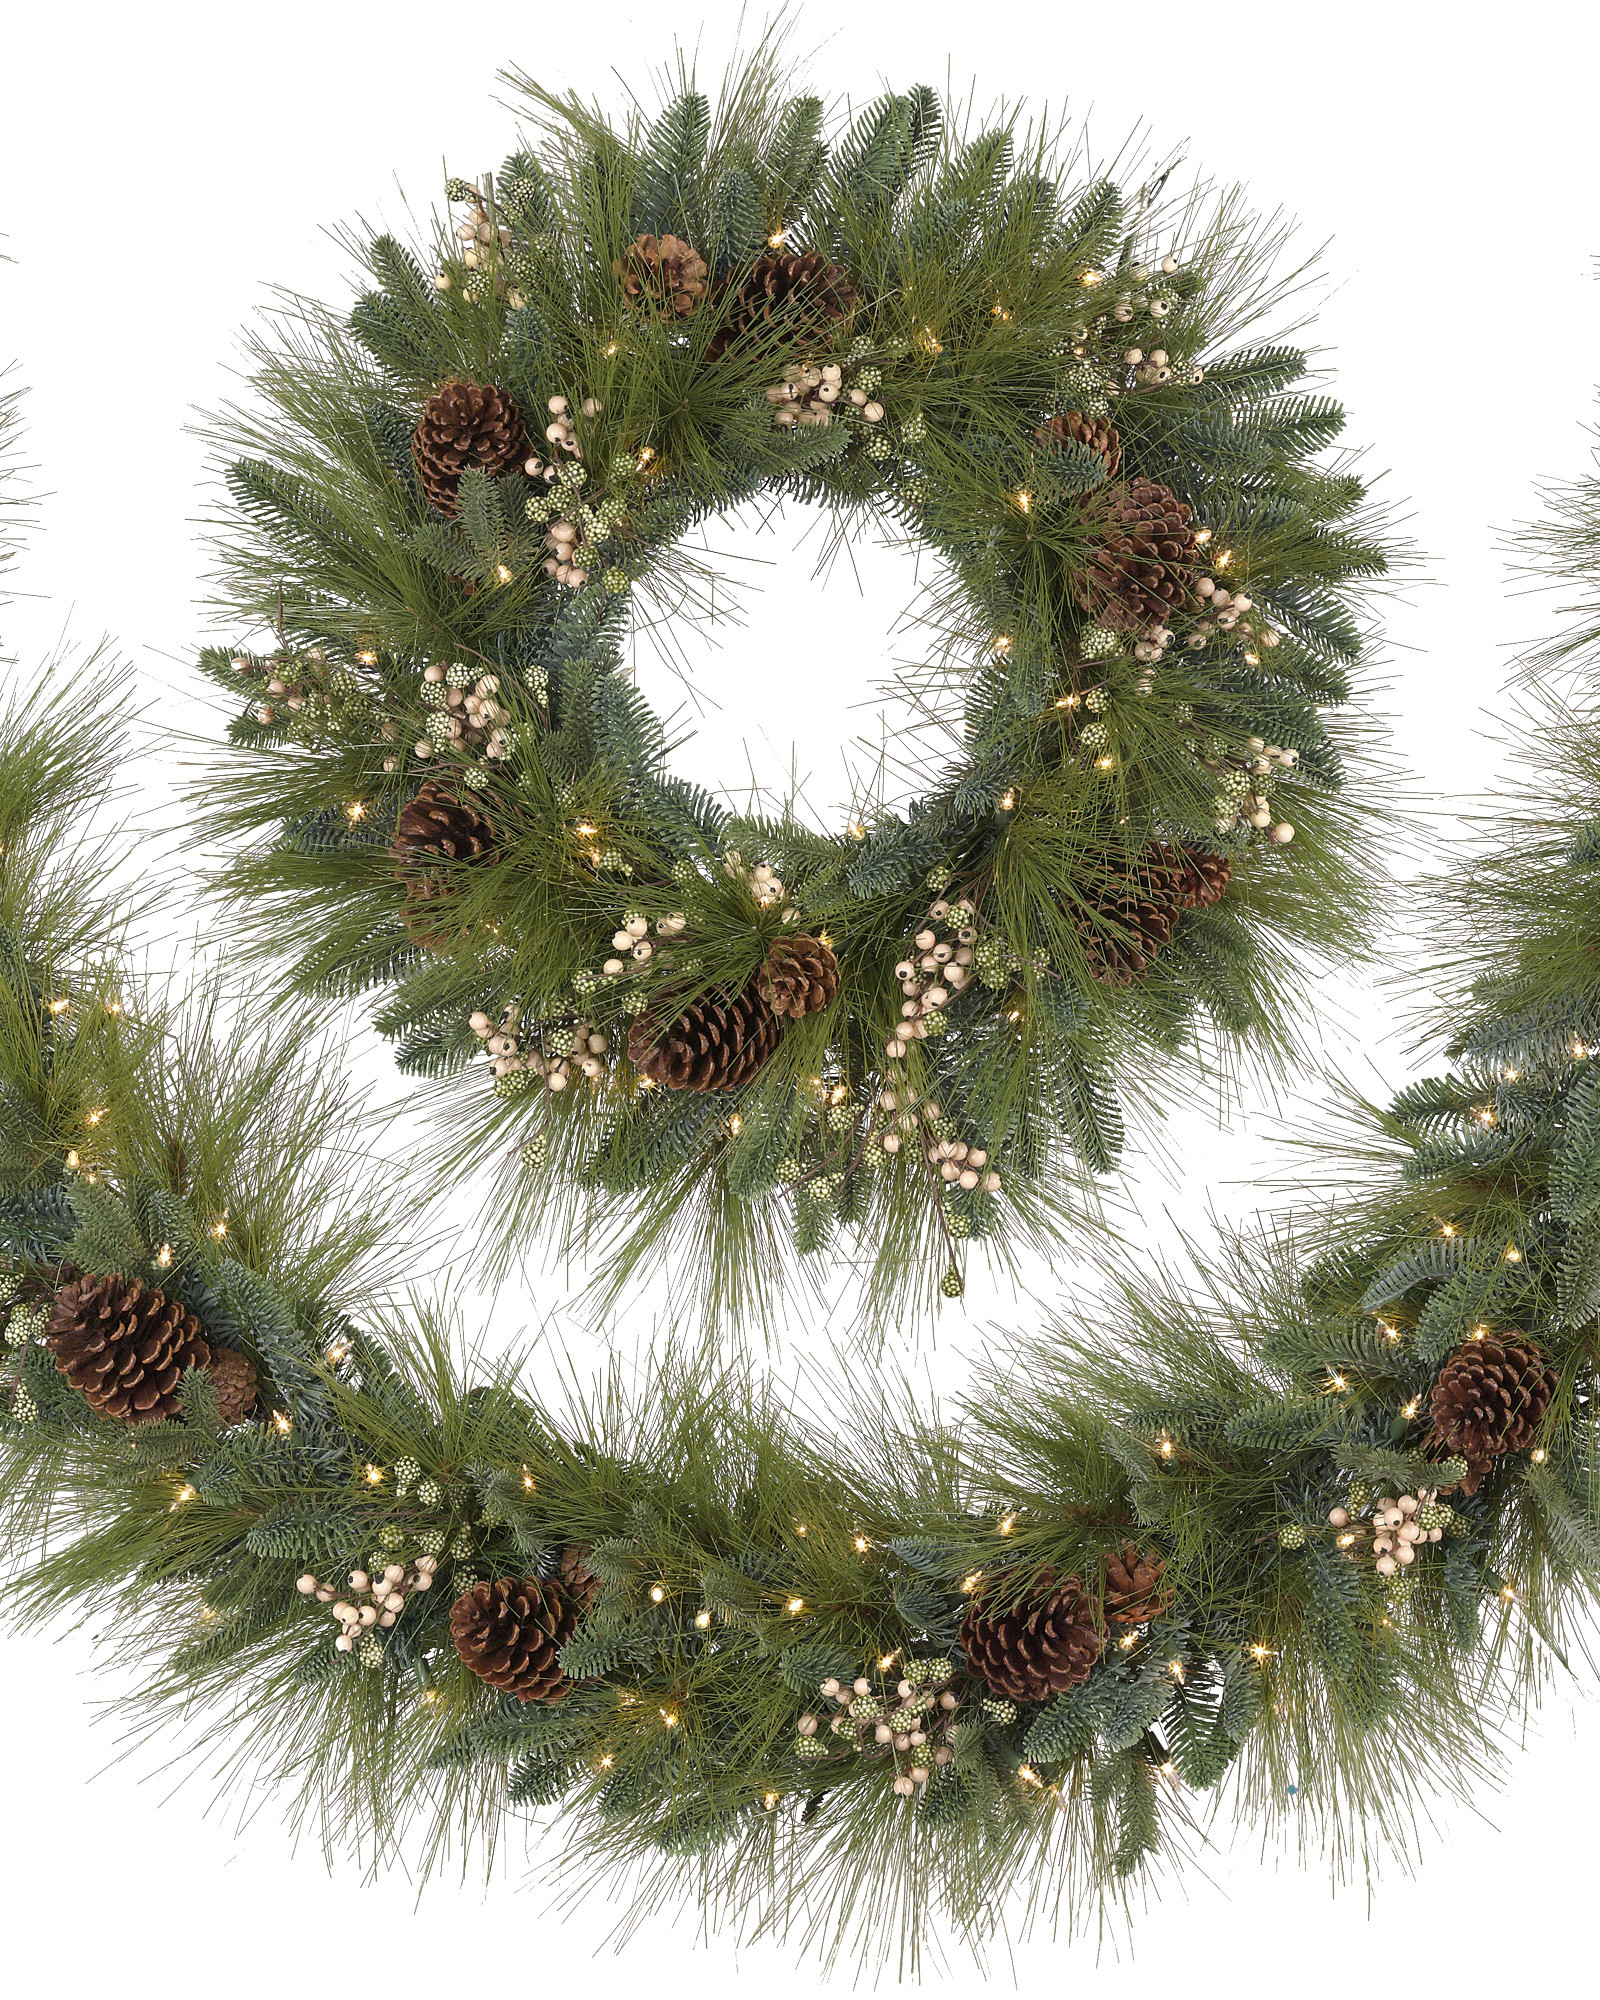 Best ideas about Outdoor Christmas Garland . Save or Pin Harvest Pine Christmas Wreath and Garland Now.